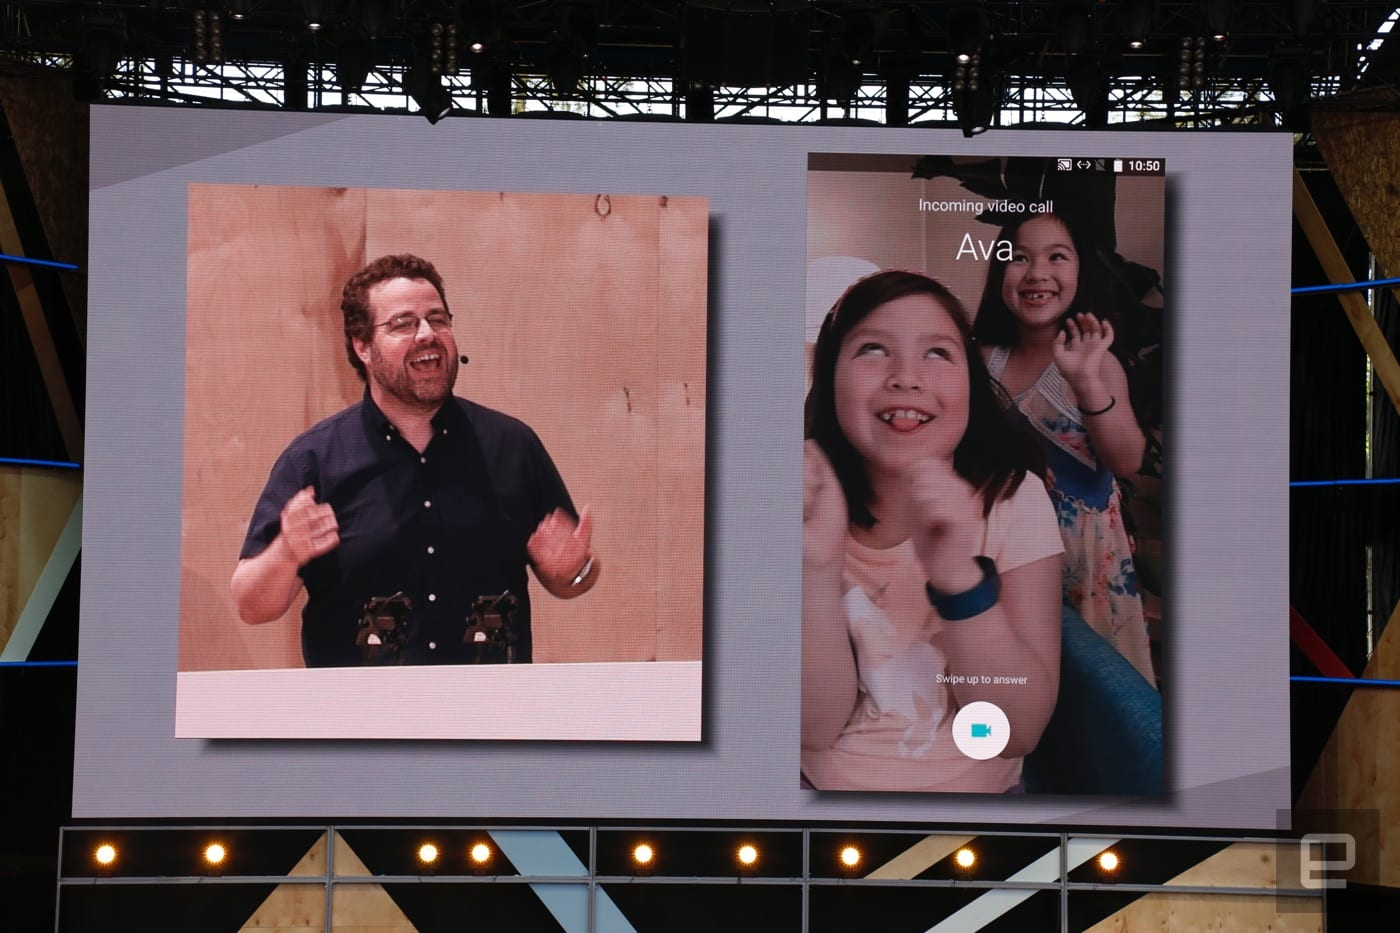 Google shows off its new 'Duo' video calling app at I/O